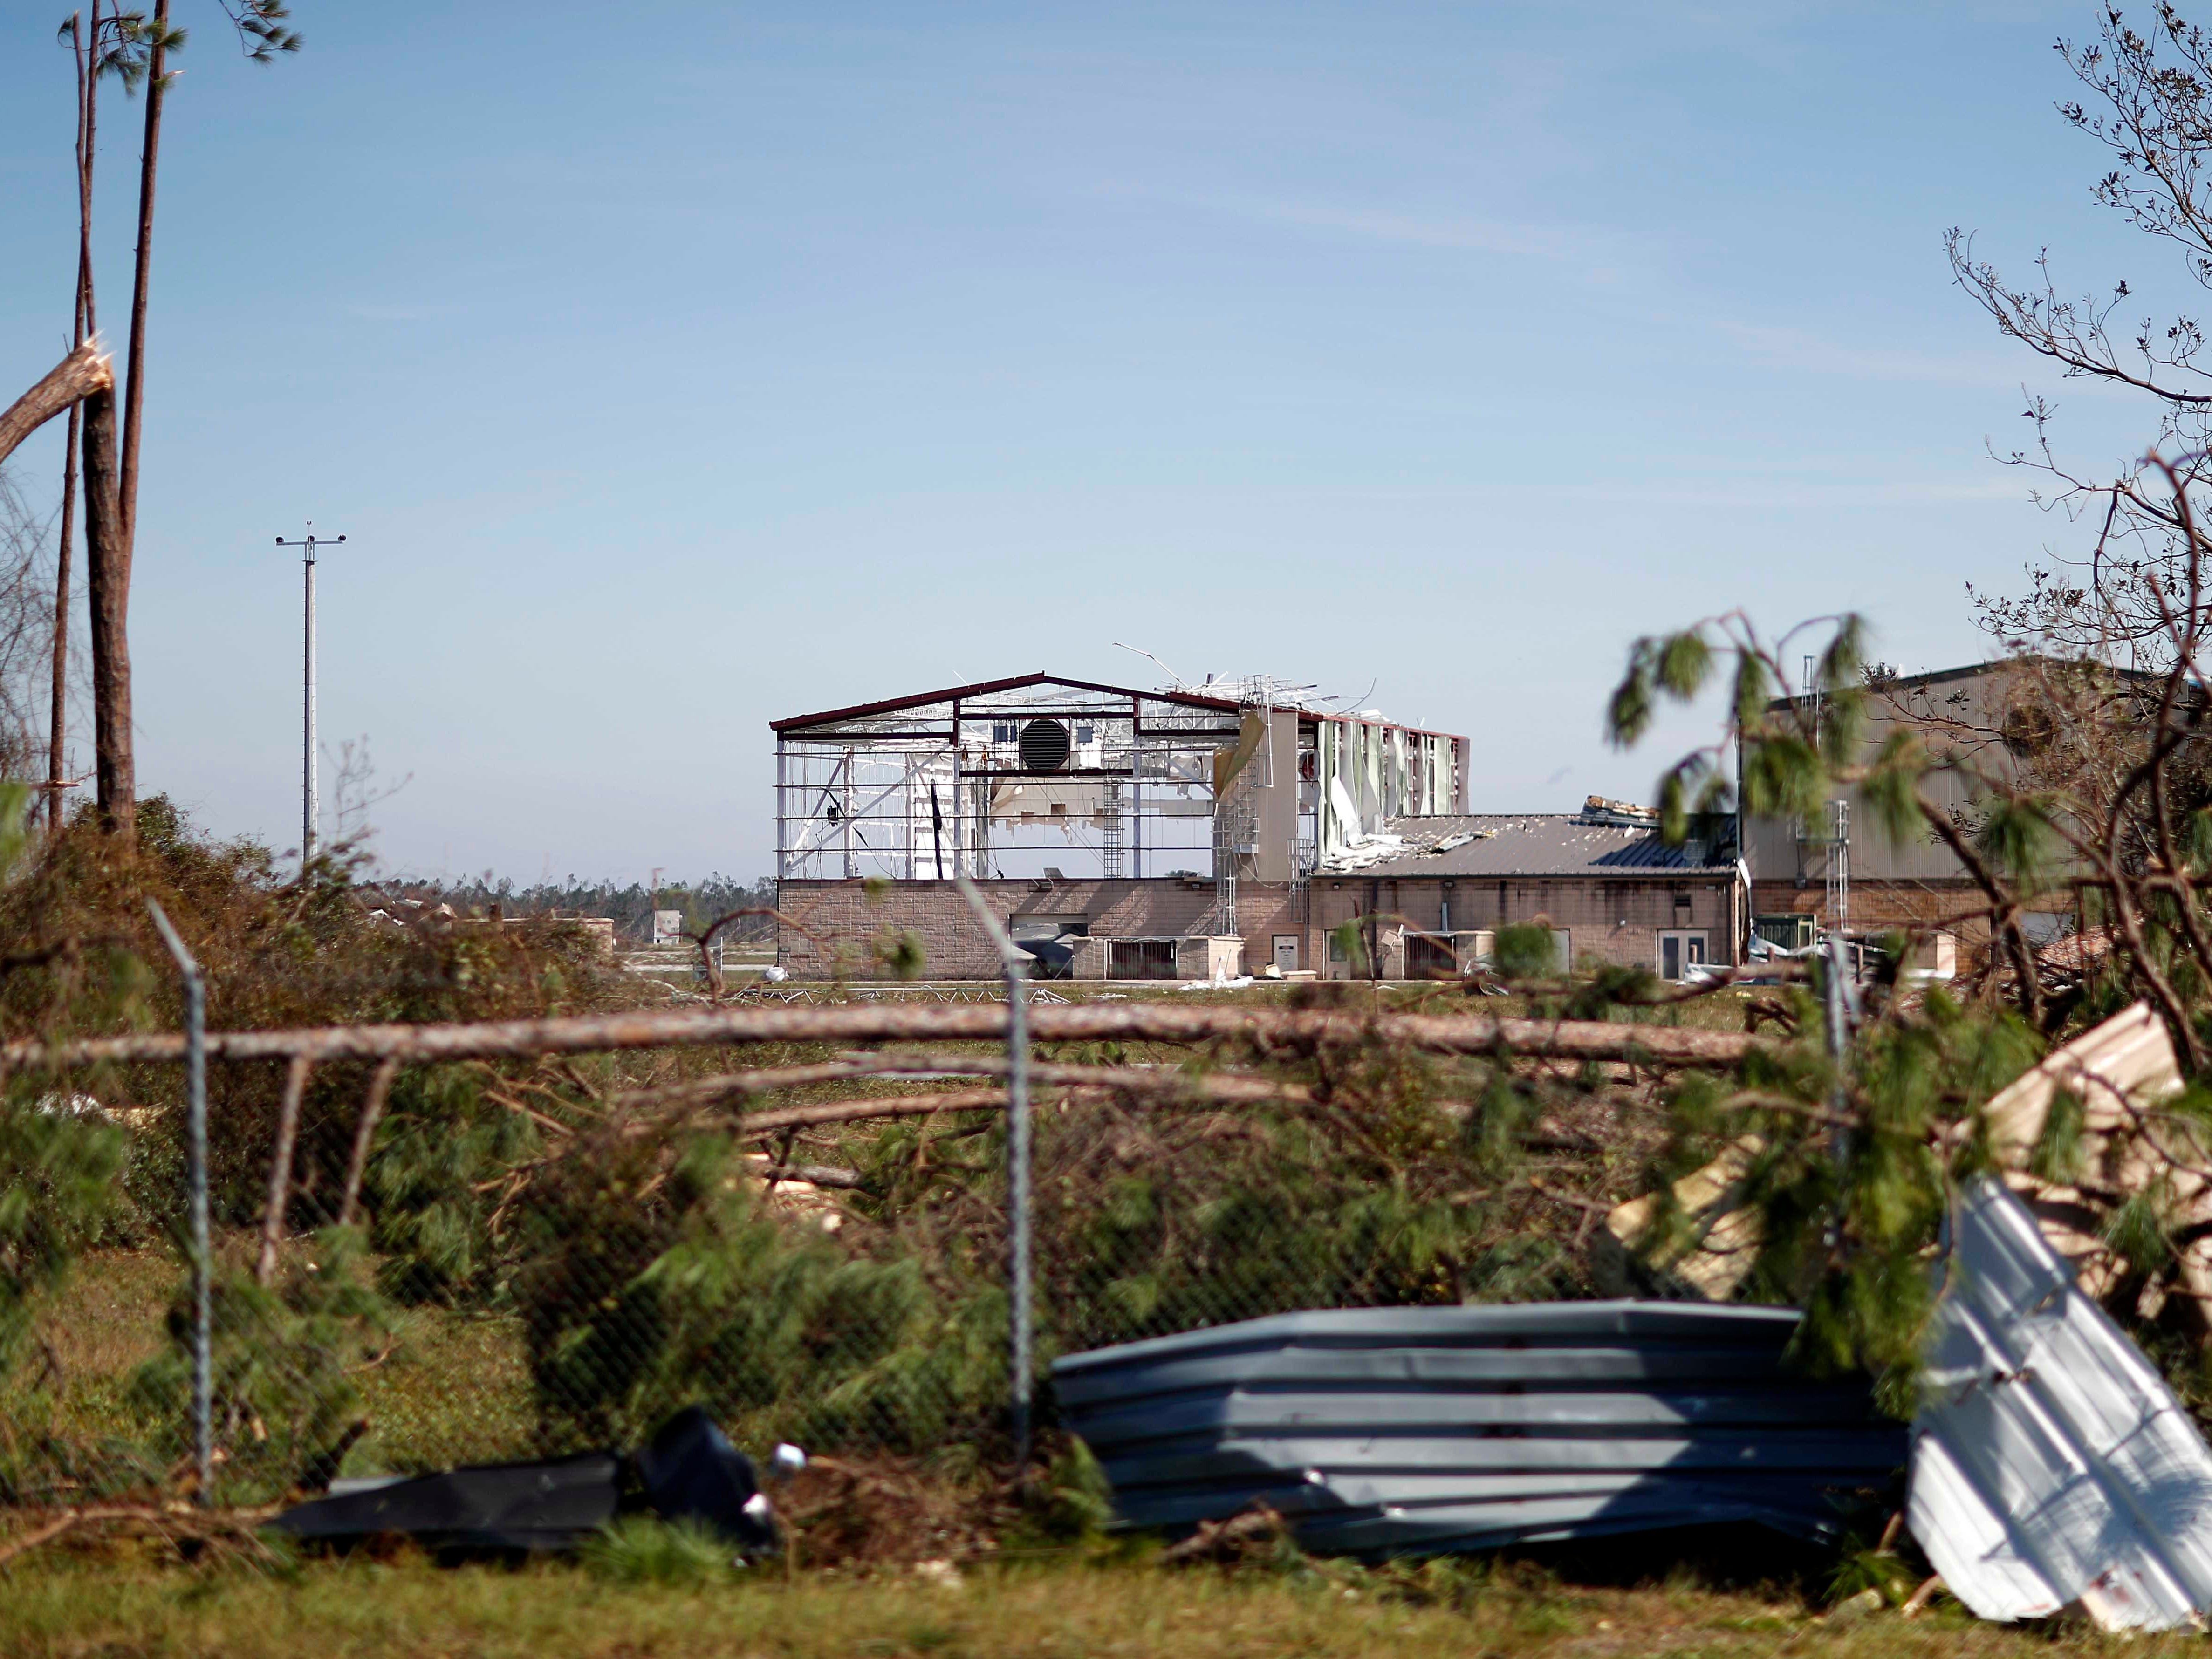 An airplane hanger at Tyndall Air Force Base is damaged from hurricane Michael in Panama City, Fla., Thursday, Oct. 11, 2018. The devastation inflicted by Hurricane Michael came into focus Thursday with rows upon rows of homes found smashed to pieces, and rescue crews began making their way into the stricken areas in hopes of accounting for hundreds of people who may have stayed behind.